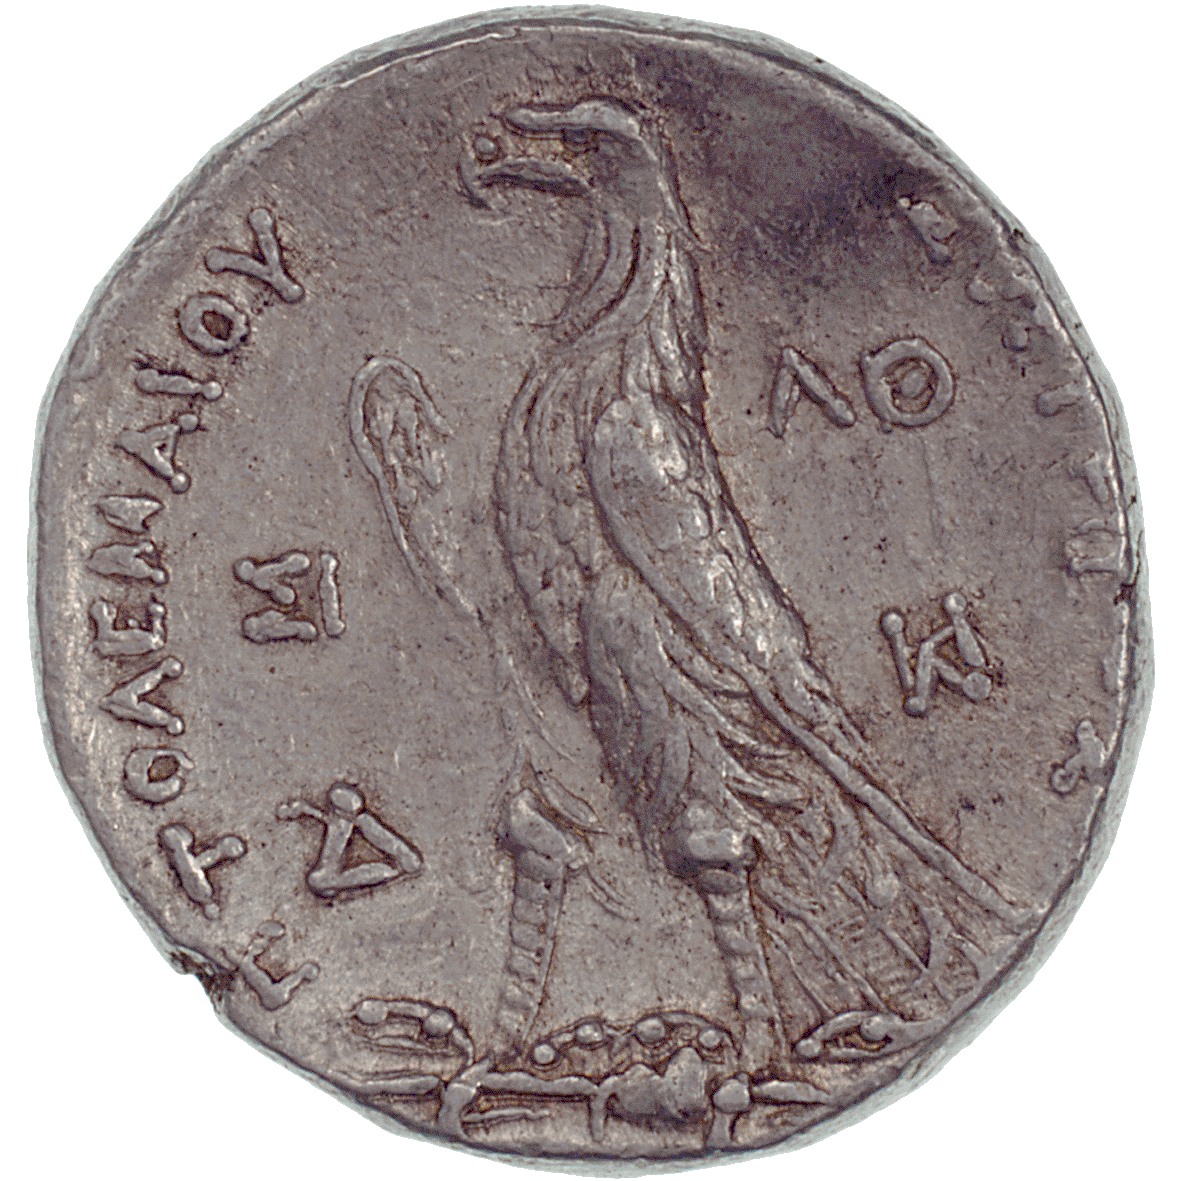 Kingdom of Egypt, Ptolemy II Philadelphus, Tetradrachm (reverse)